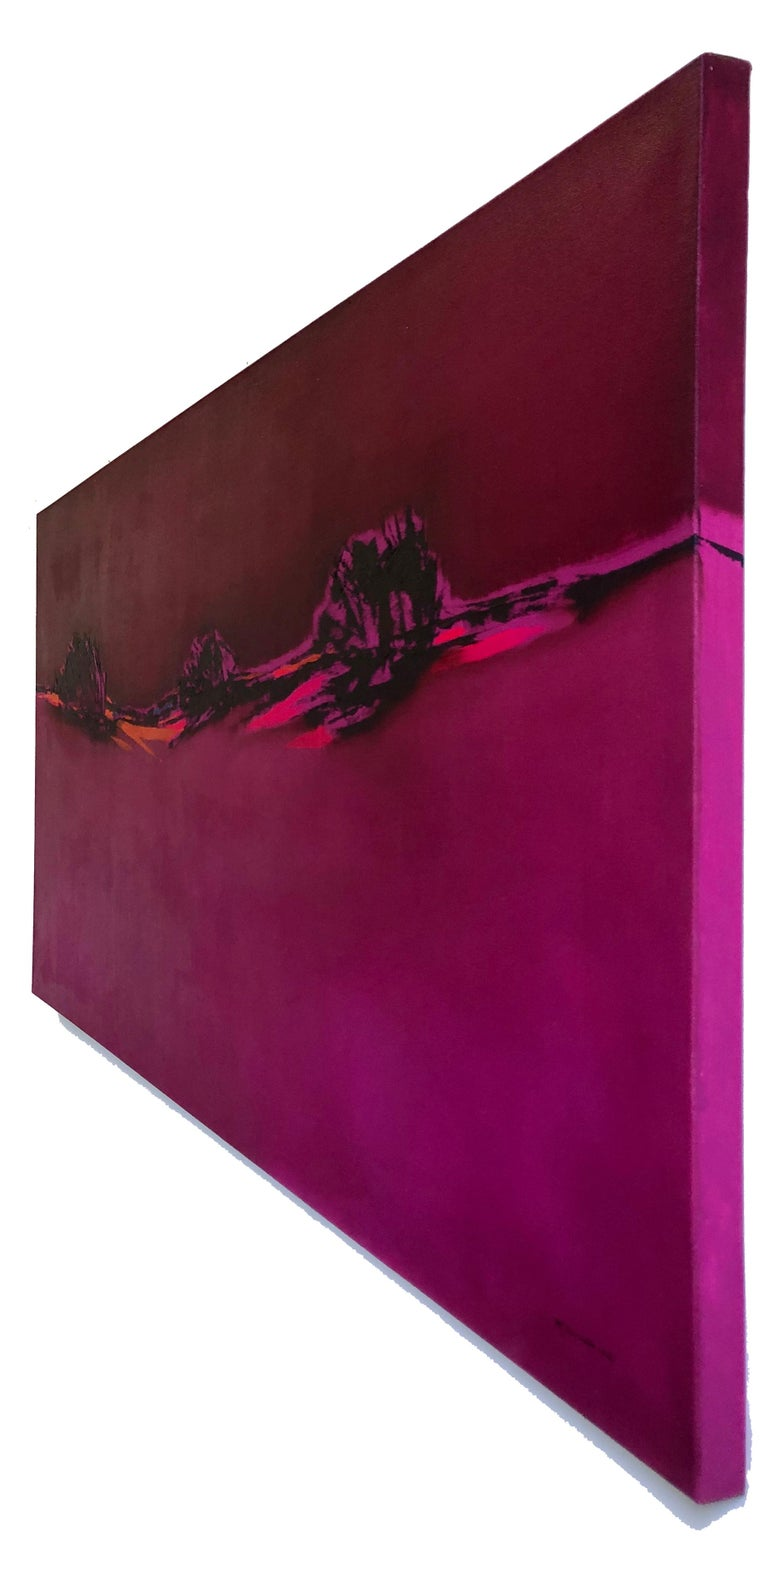 Pink Blazing - Homage to Patagonia, abstract landscape oil bright bold colors - Abstract Painting by Maria Jose Concha